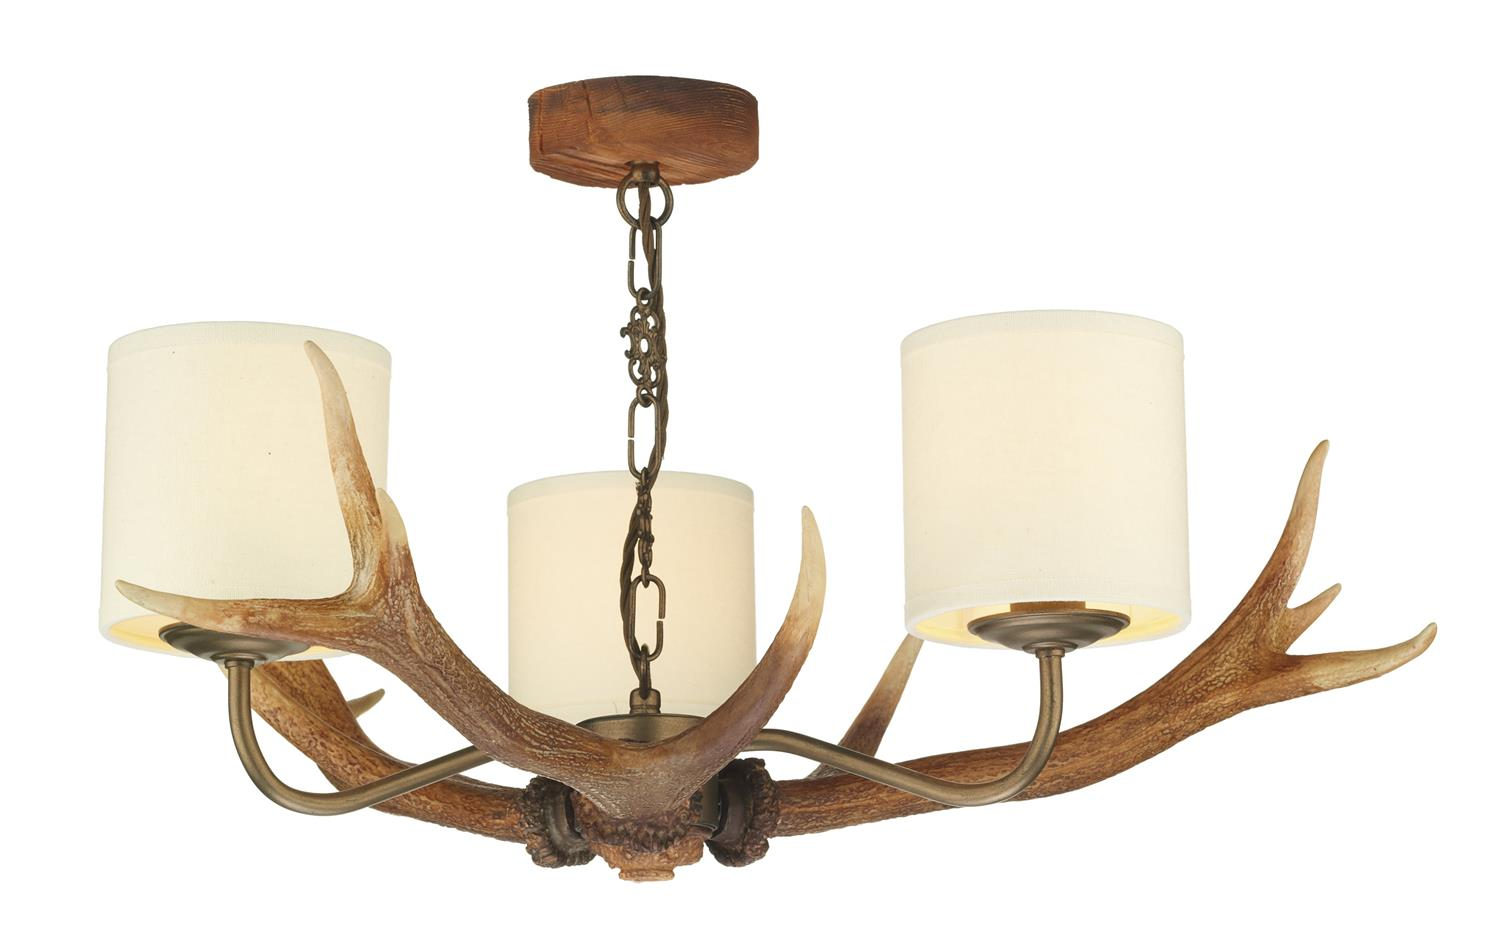 David Hunt Lighting ANT0329 Antler 3 Light Pendant Chandelier with Cream Shades